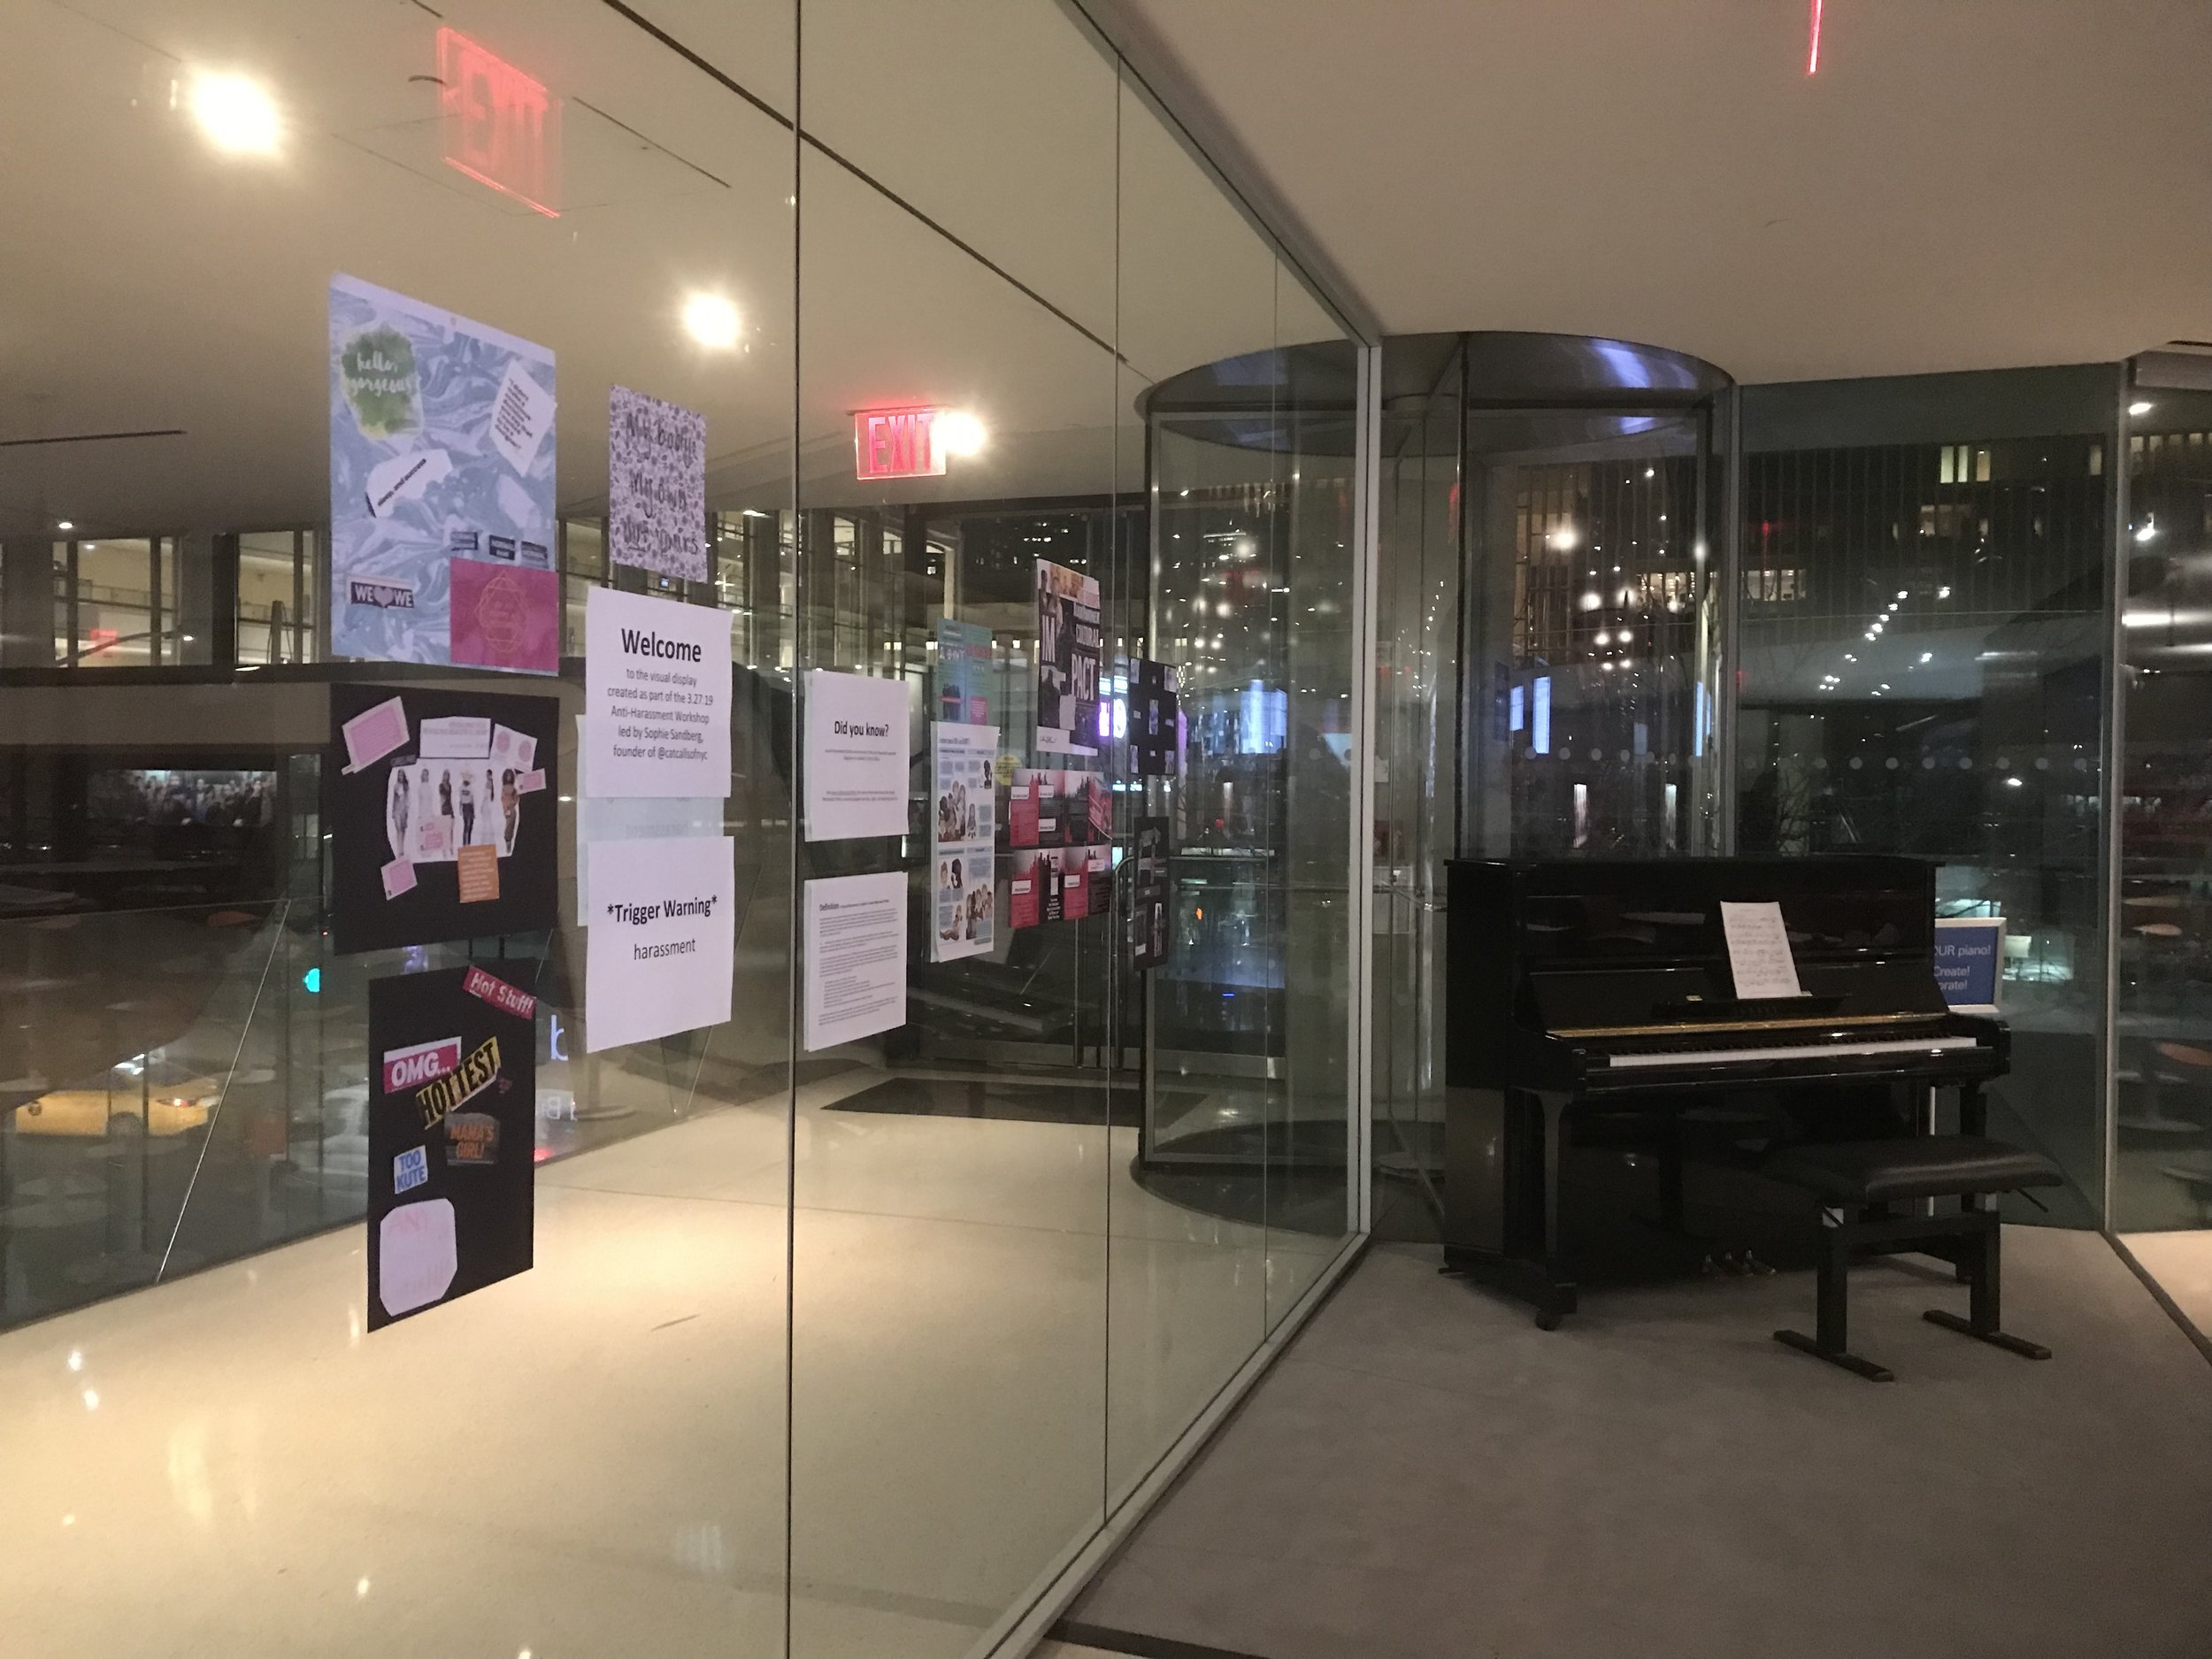 Sophie ran an anti-harassment workshop at Juilliard School of Music and spoke about Catcalls of NYC and creative methods of resistance.